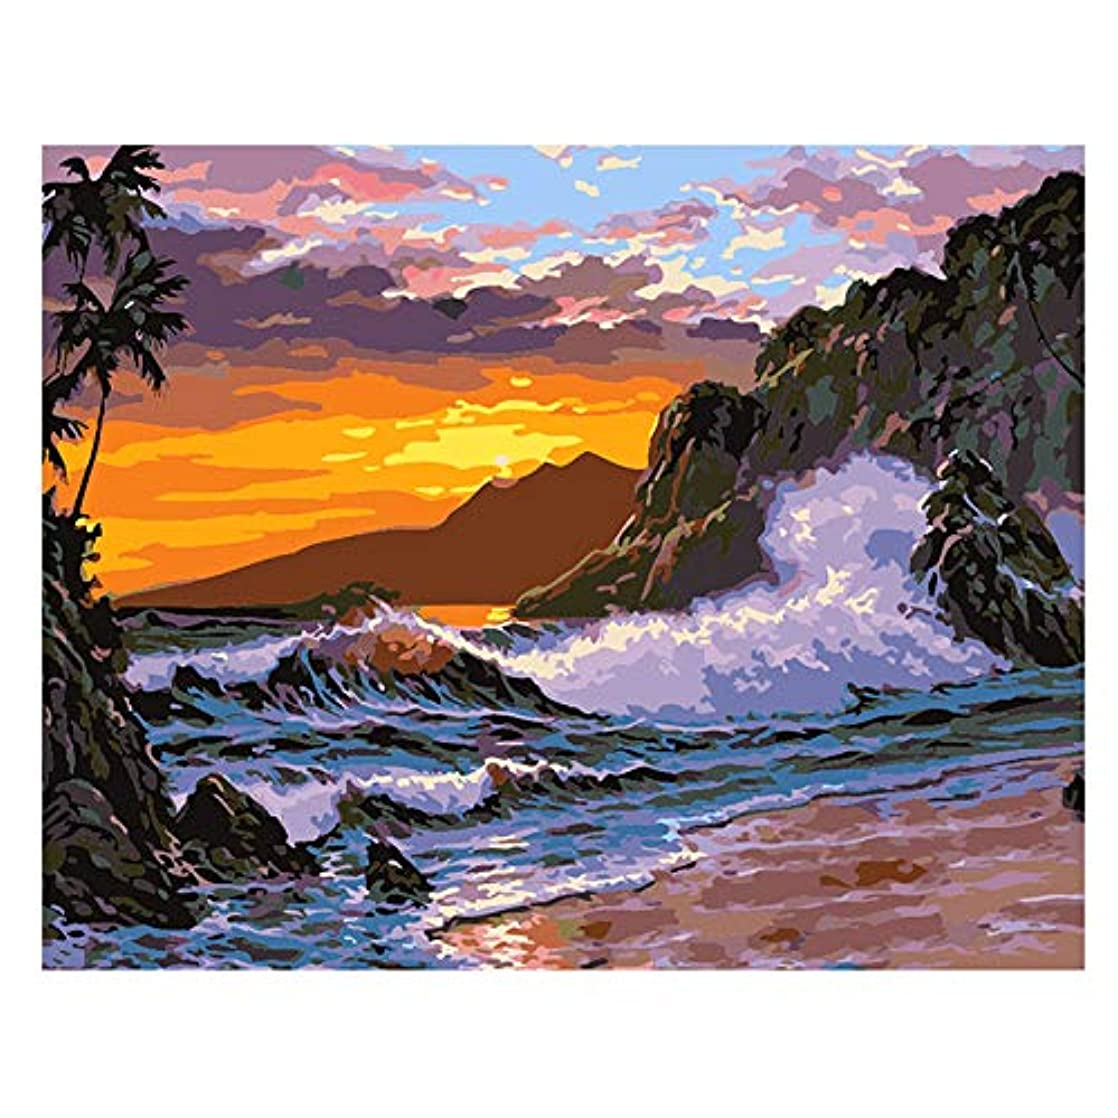 Acrylic Paint by Number Kits for Adults Beginner by TOCARE,Sea Wave Pattern 16x20inch codbepww73223